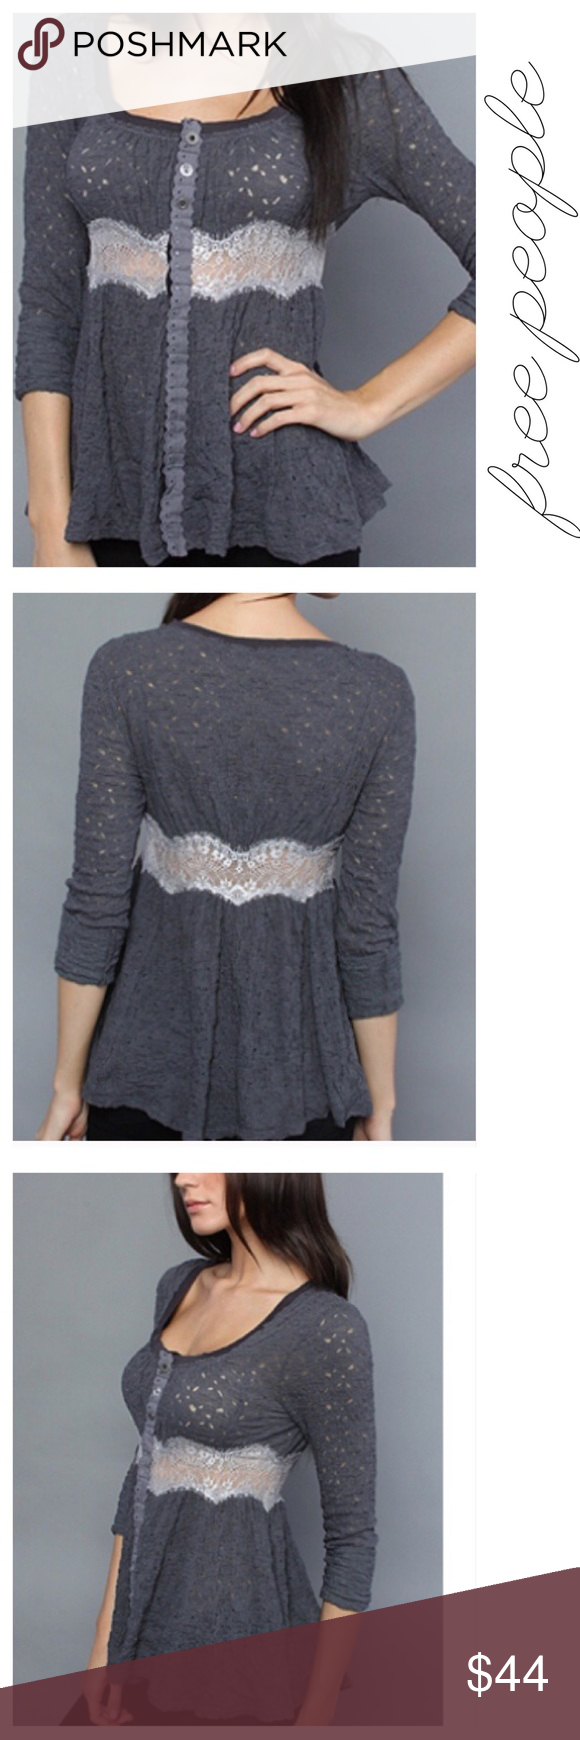 Free People Gray Crepe Lace Cardigan Top Buttons S | Lightweight ...